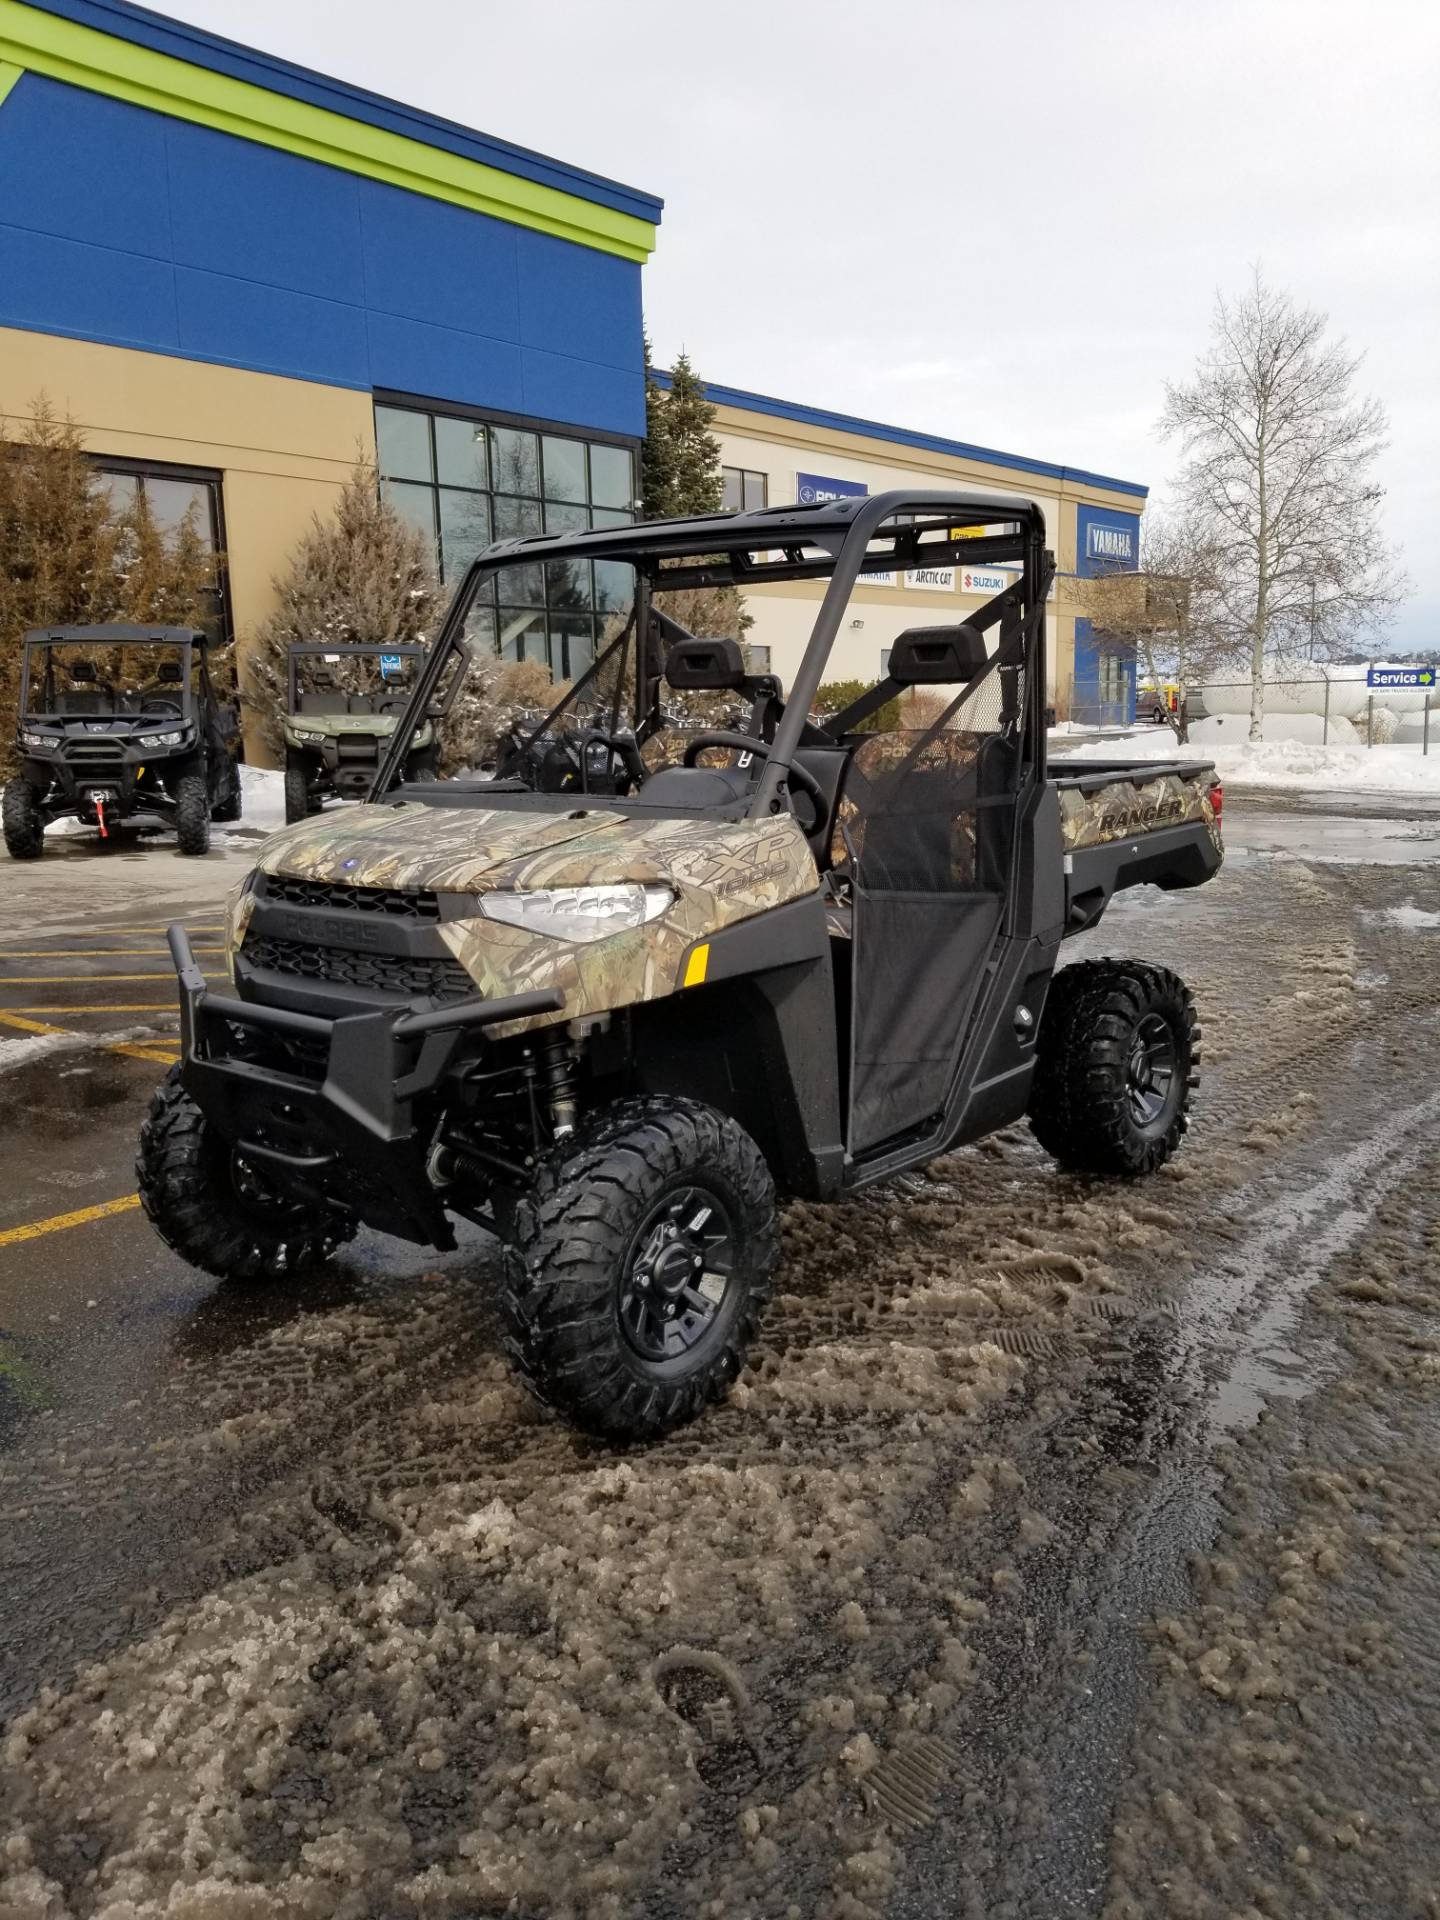 2020 Polaris Ranger XP 1000 Premium in Rexburg, Idaho - Photo 2